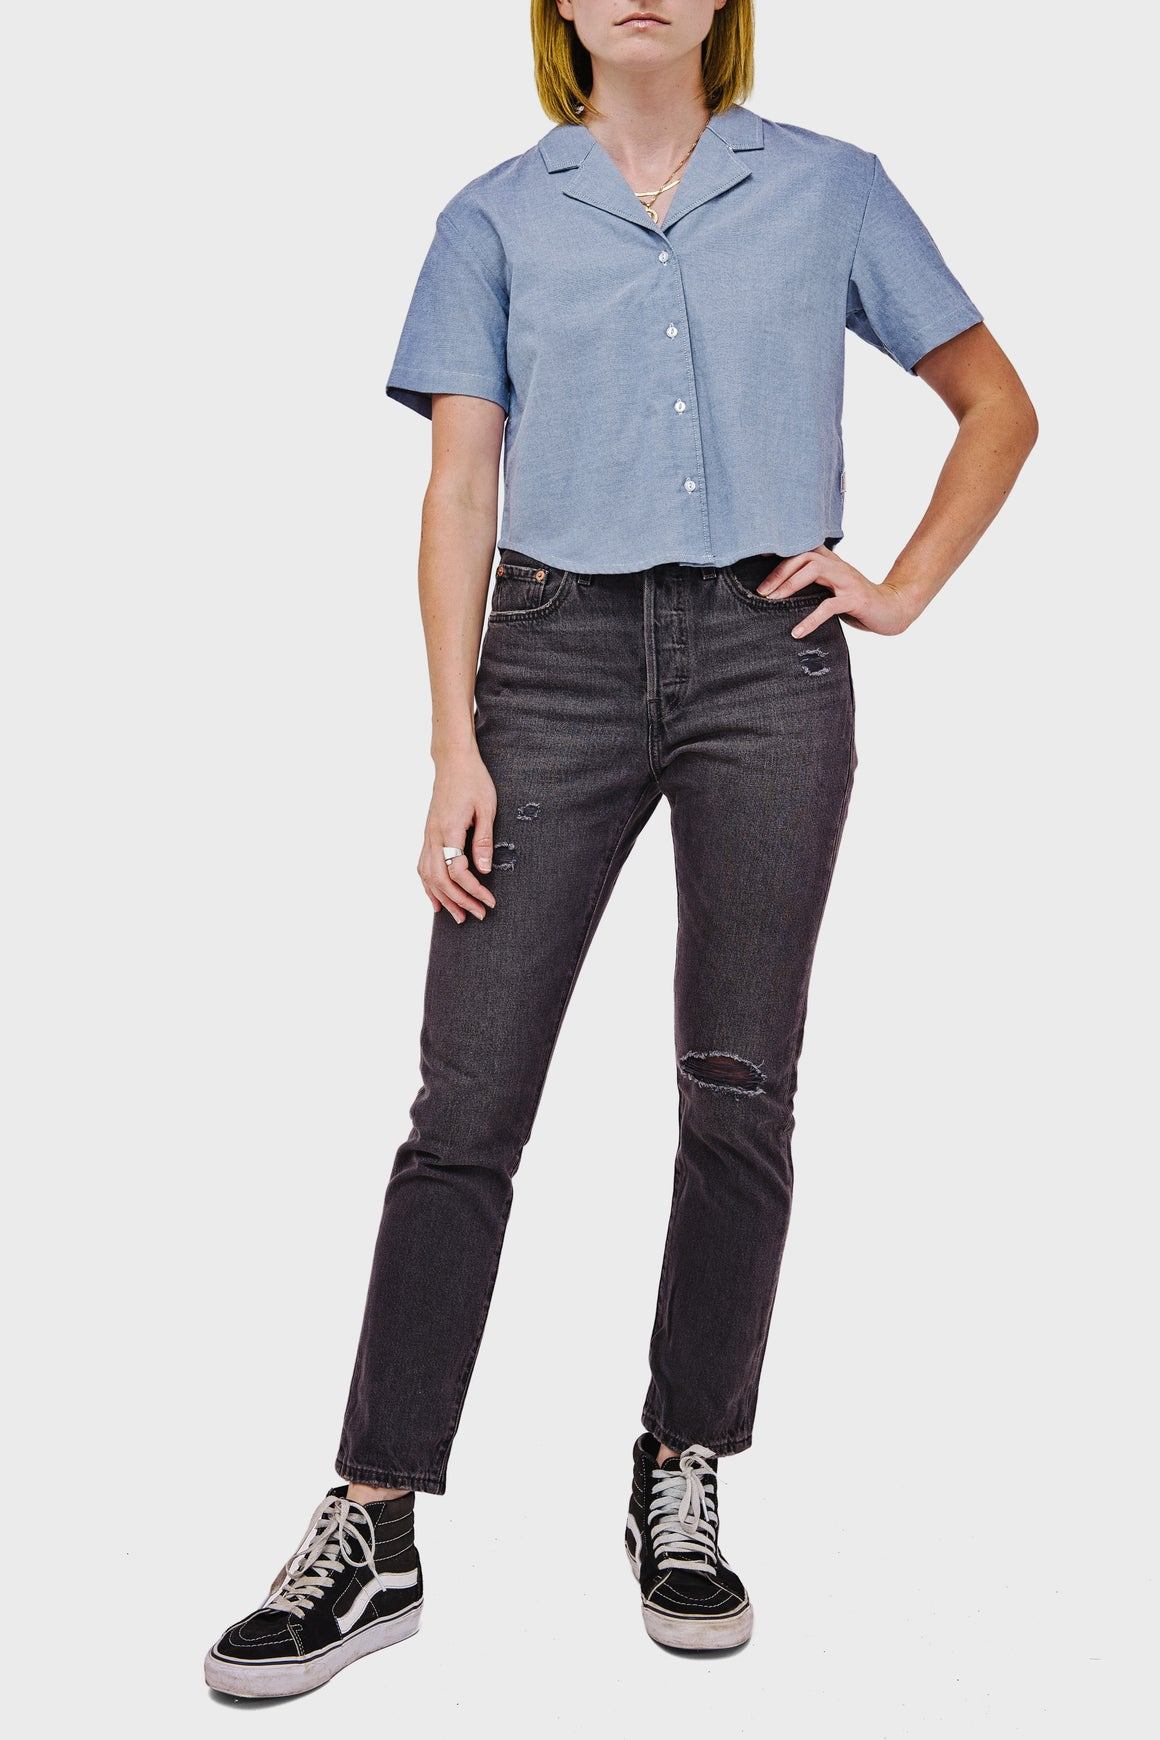 Women's Levi's 501 Skinny in Black Mail